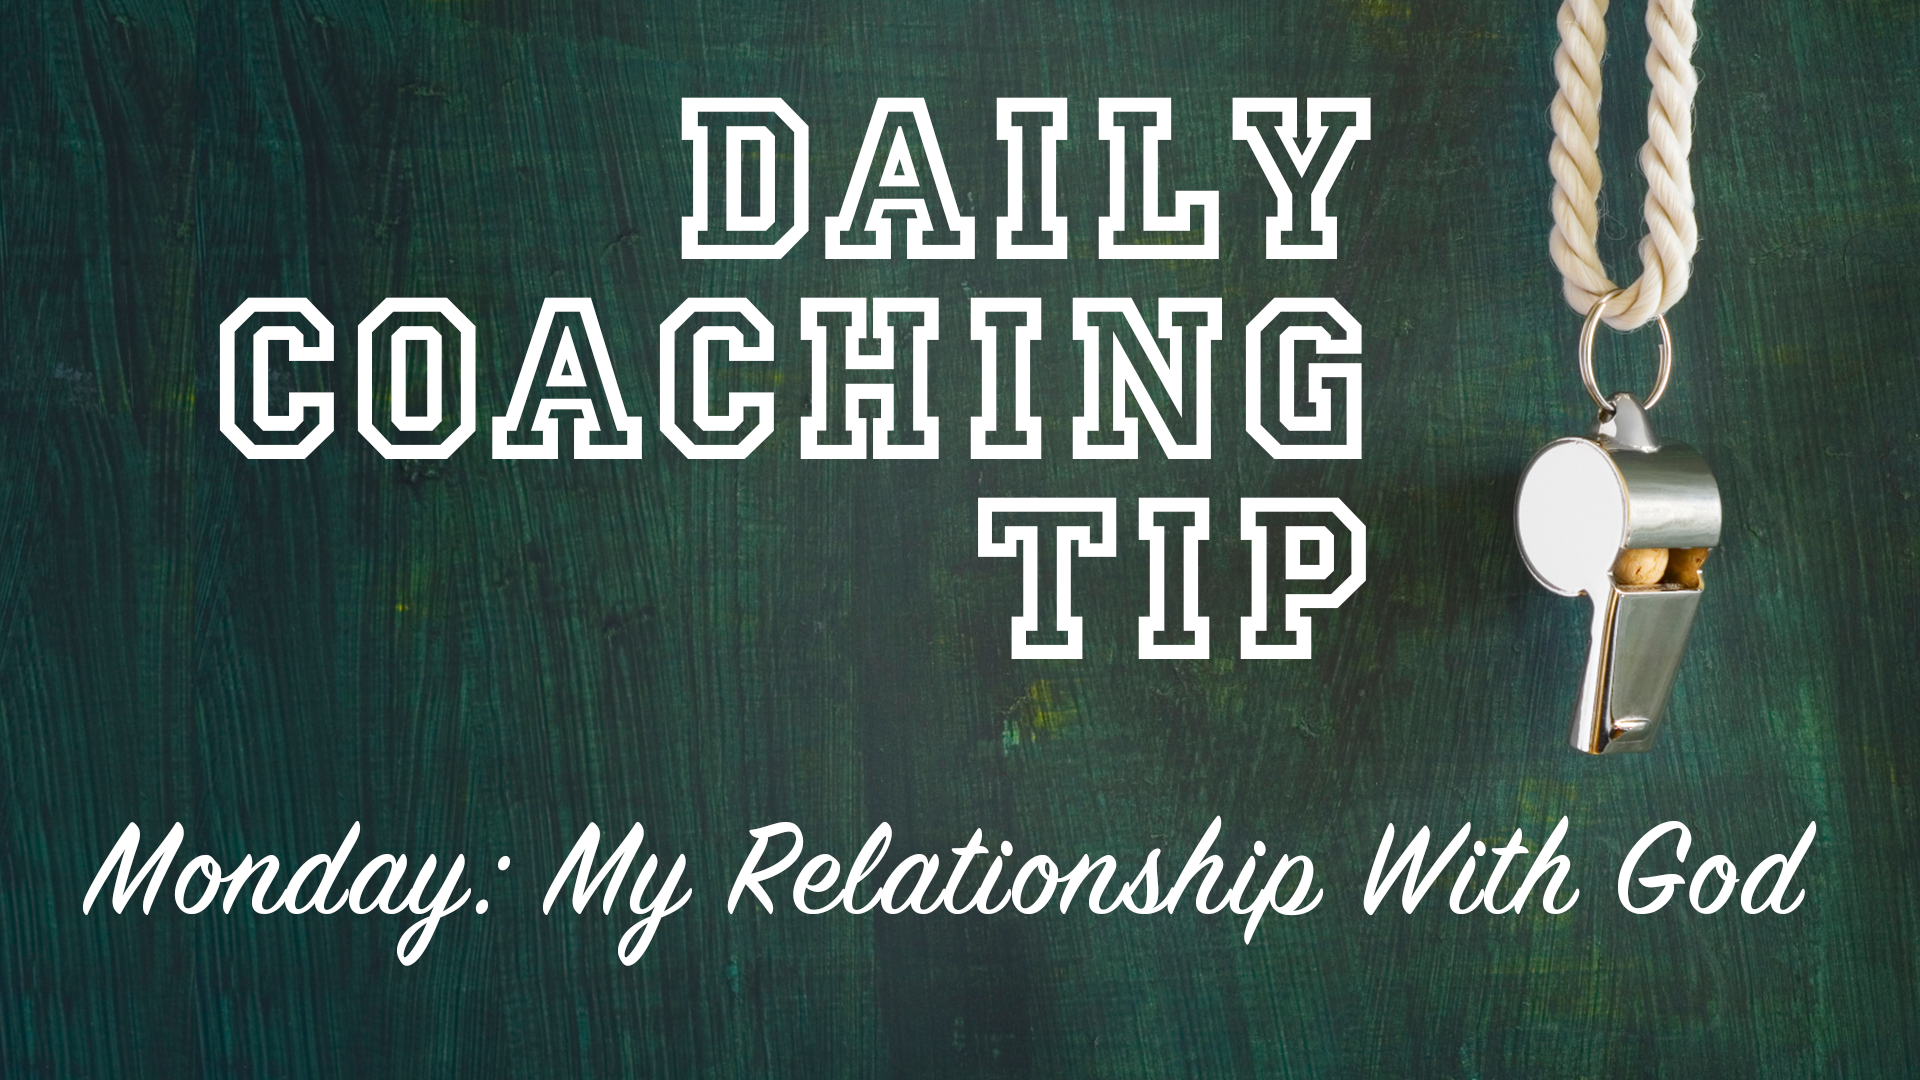 Daily Coaching Tip, Monday, February 22, 2016